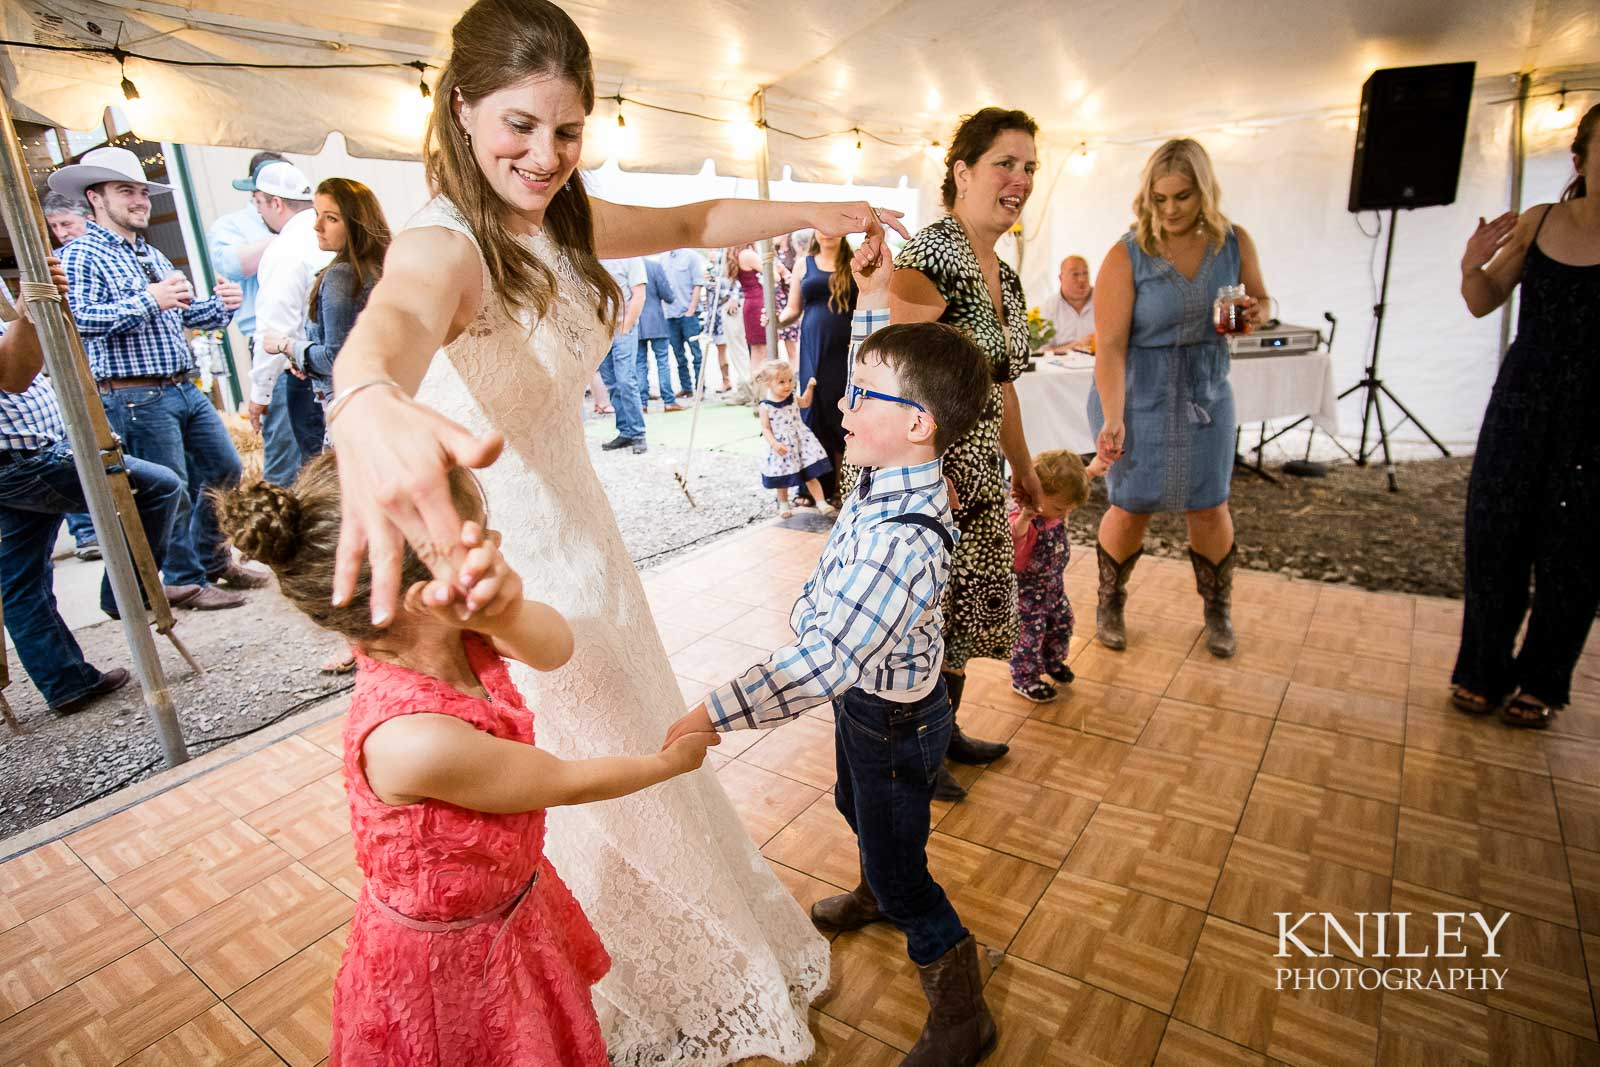 60-Western-New-York-farm-wedding-Kniley-Photography.jpg